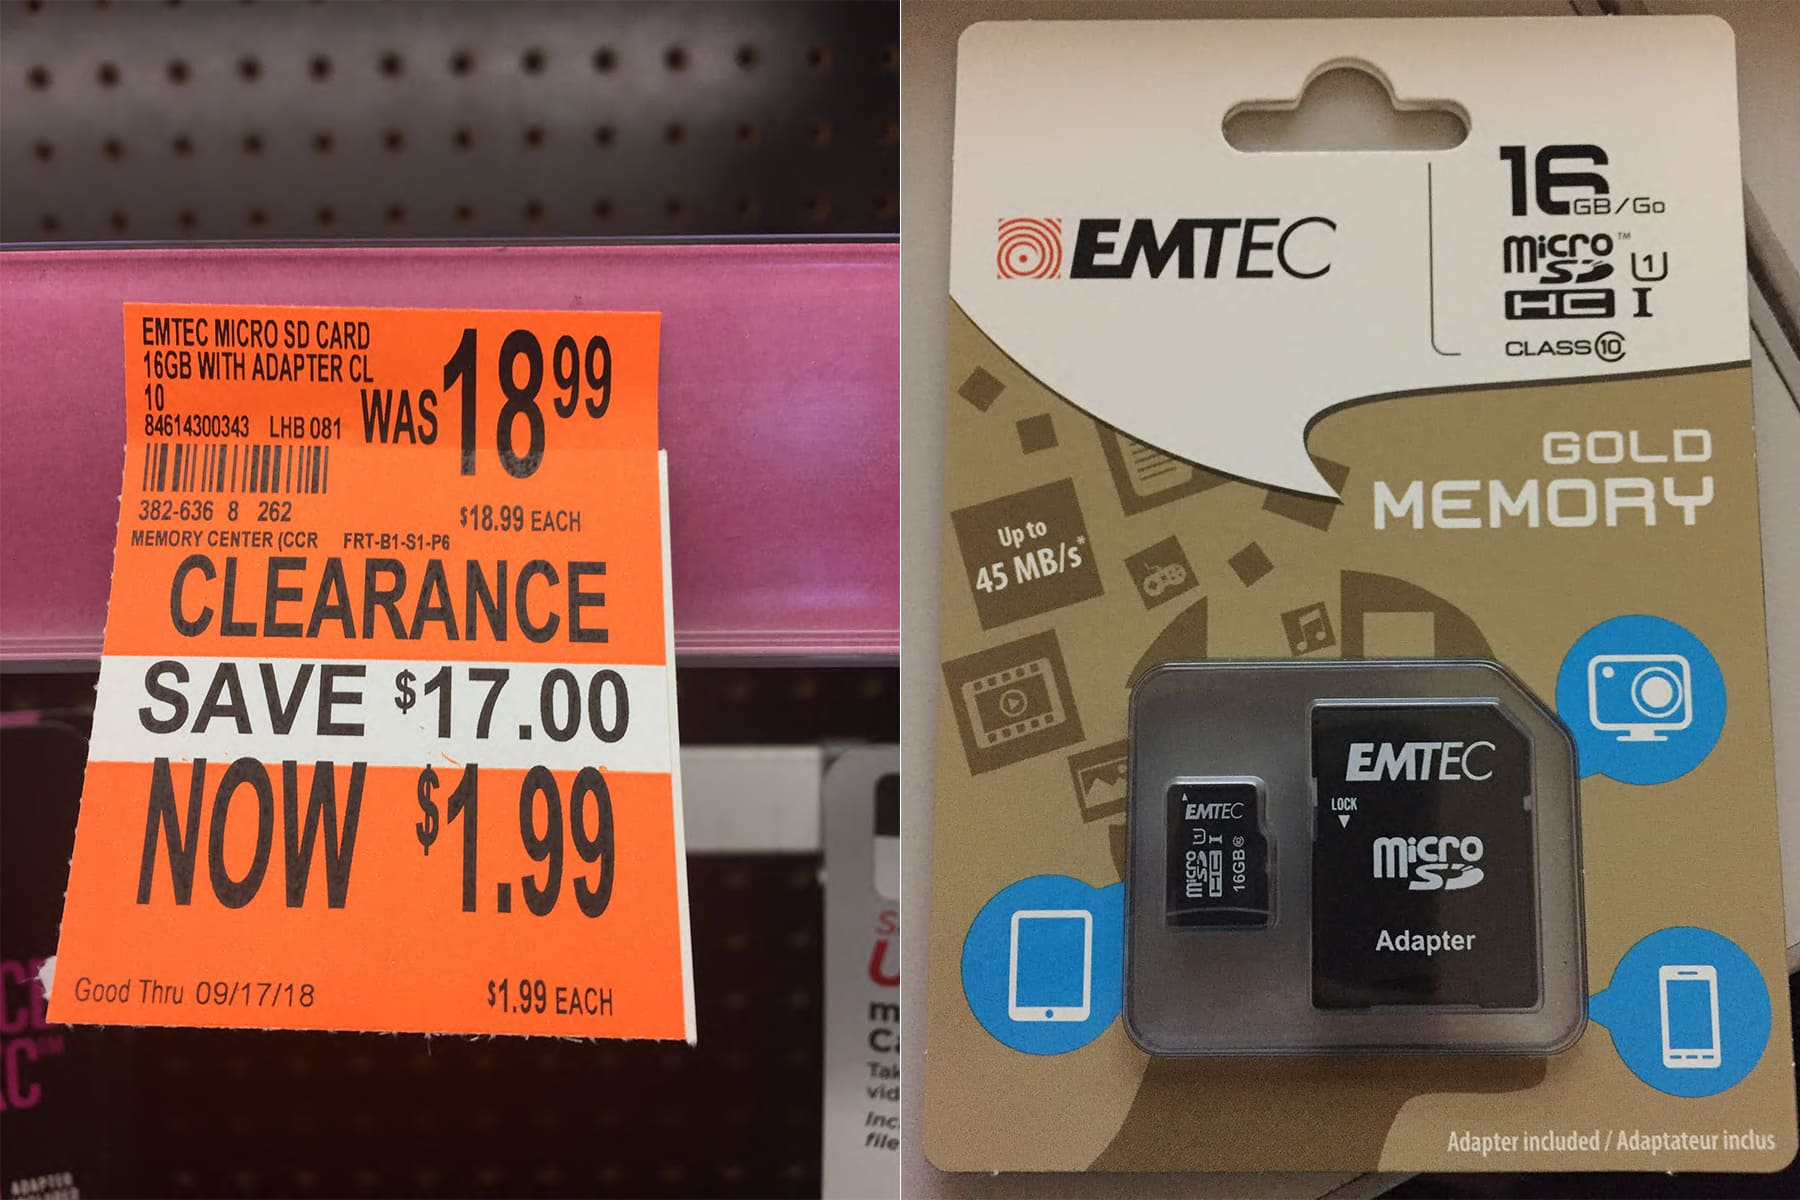 16gb Micro SD card with adapter $1.99 clearance Walgreens YMMV